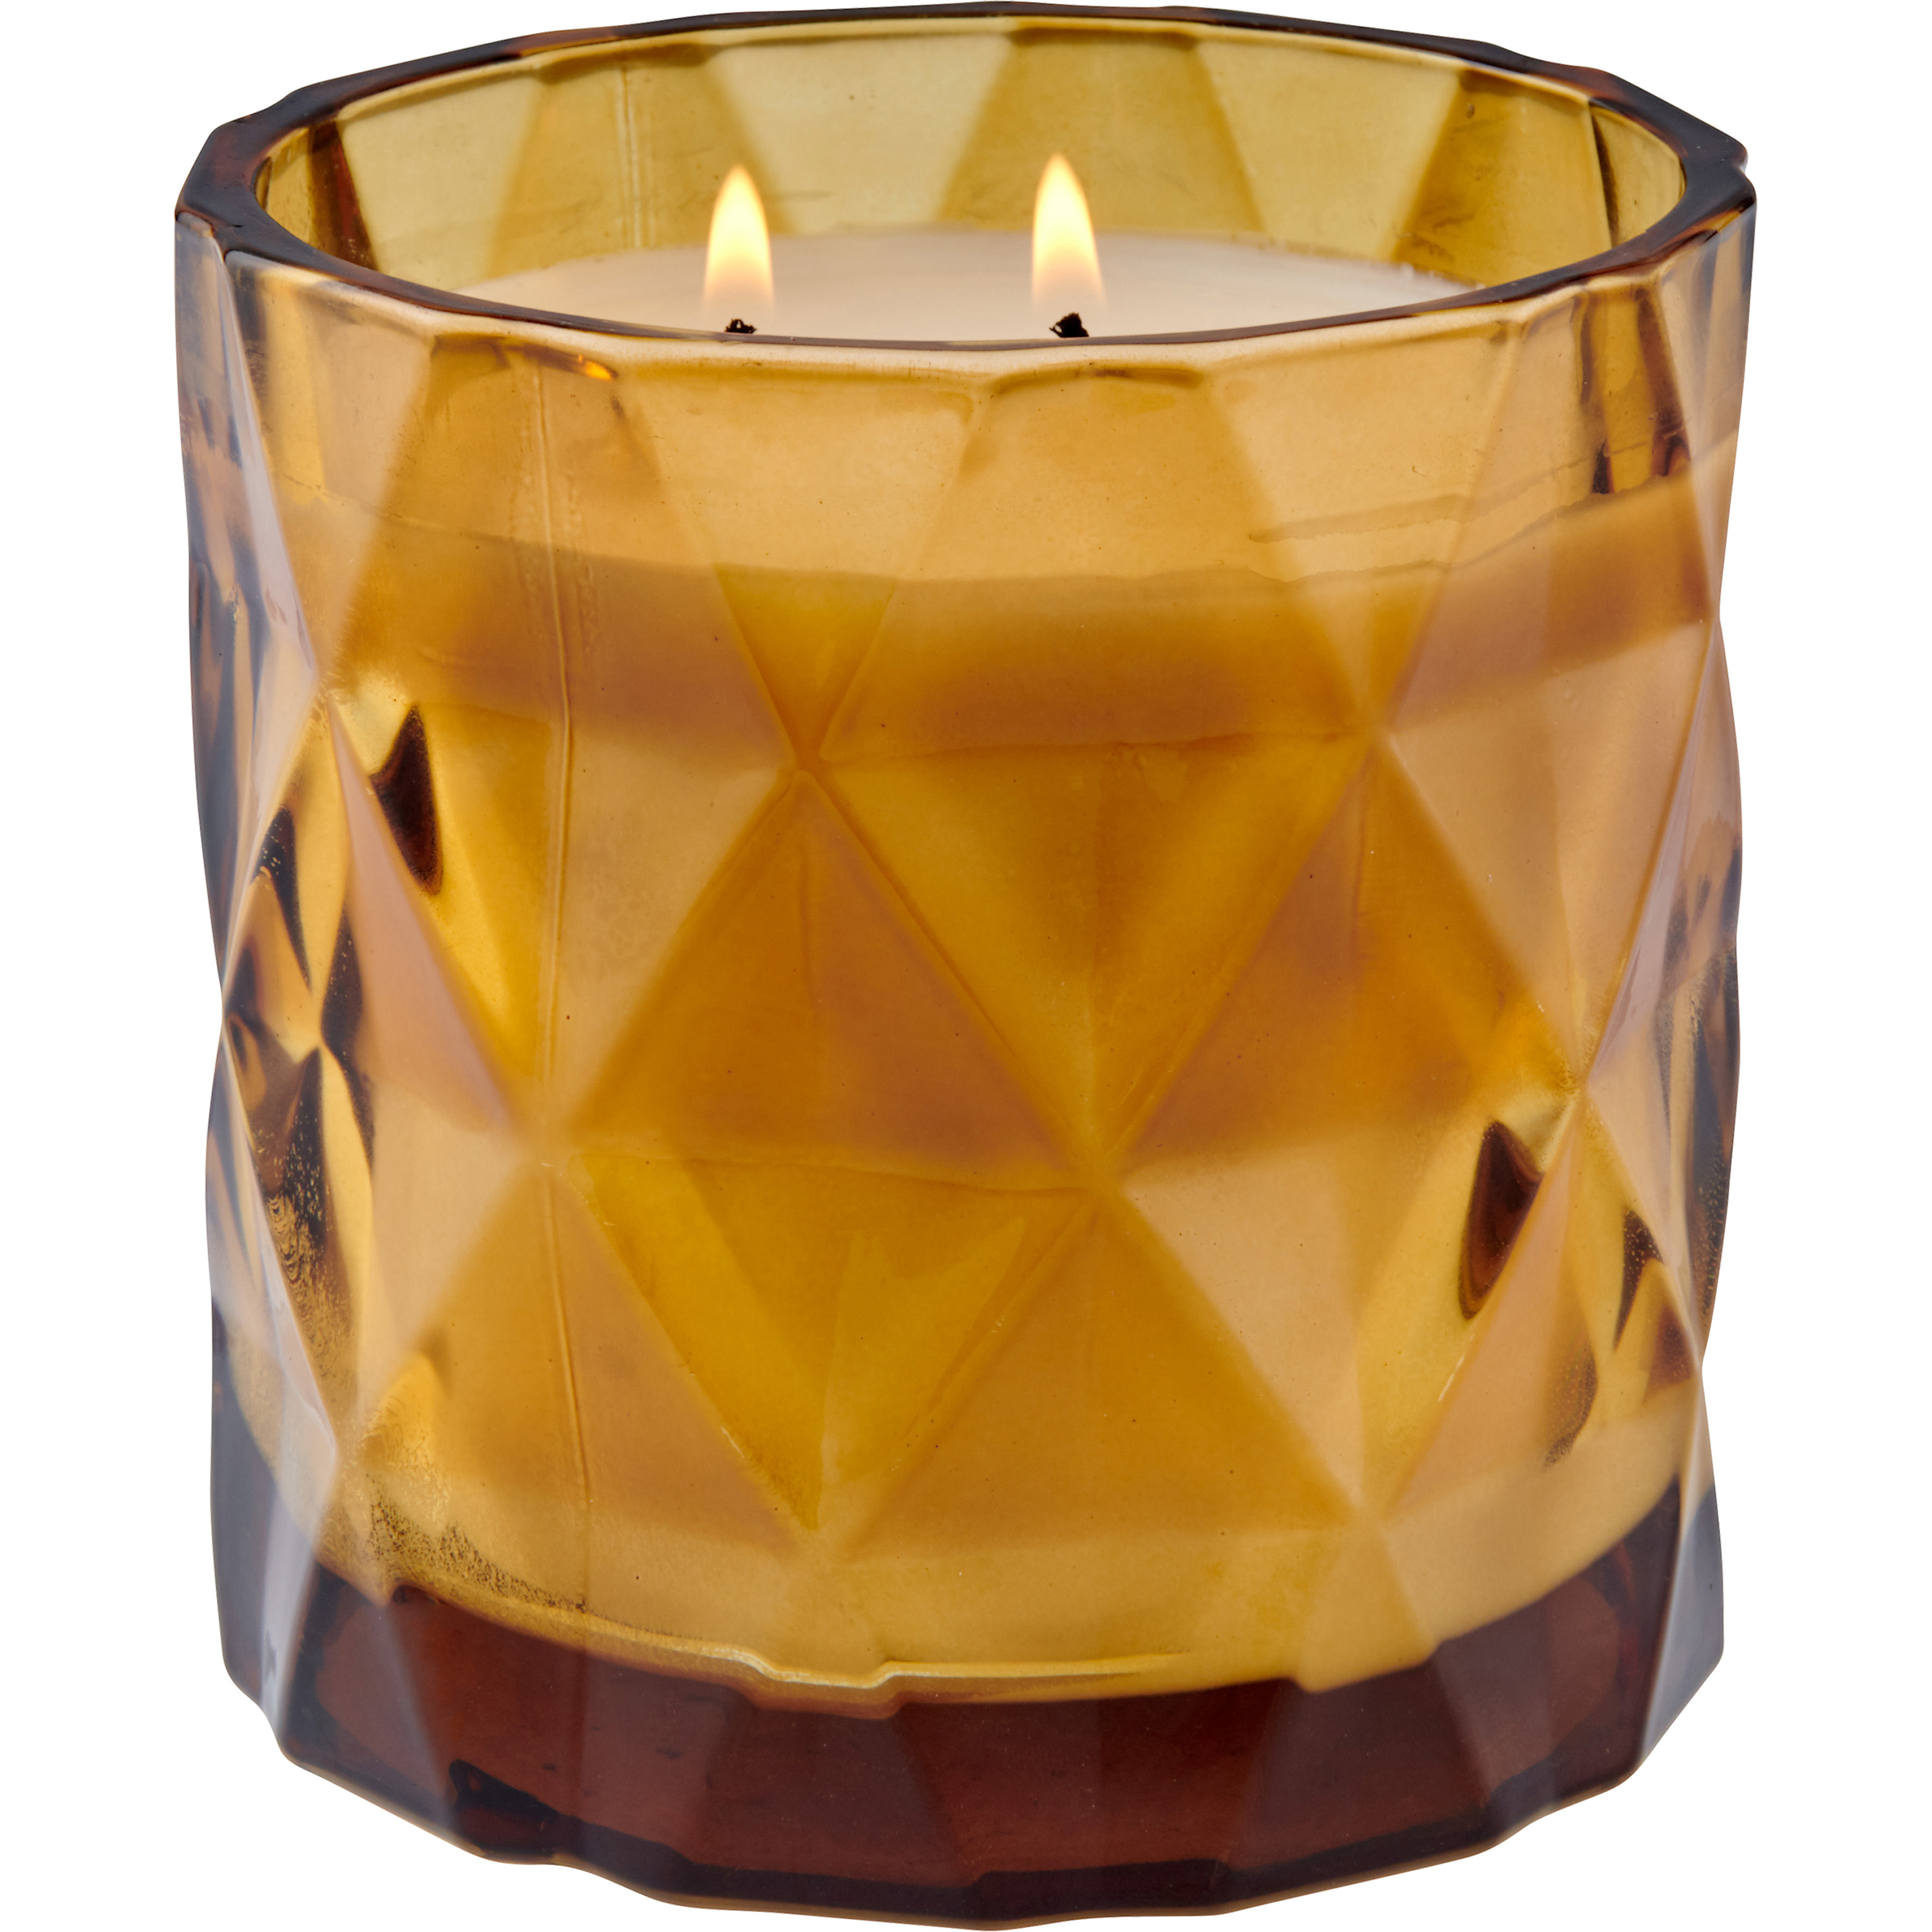 Better Homes & Gardens Geometric Glass 2-wick Candle, Soft Cashmere Amber